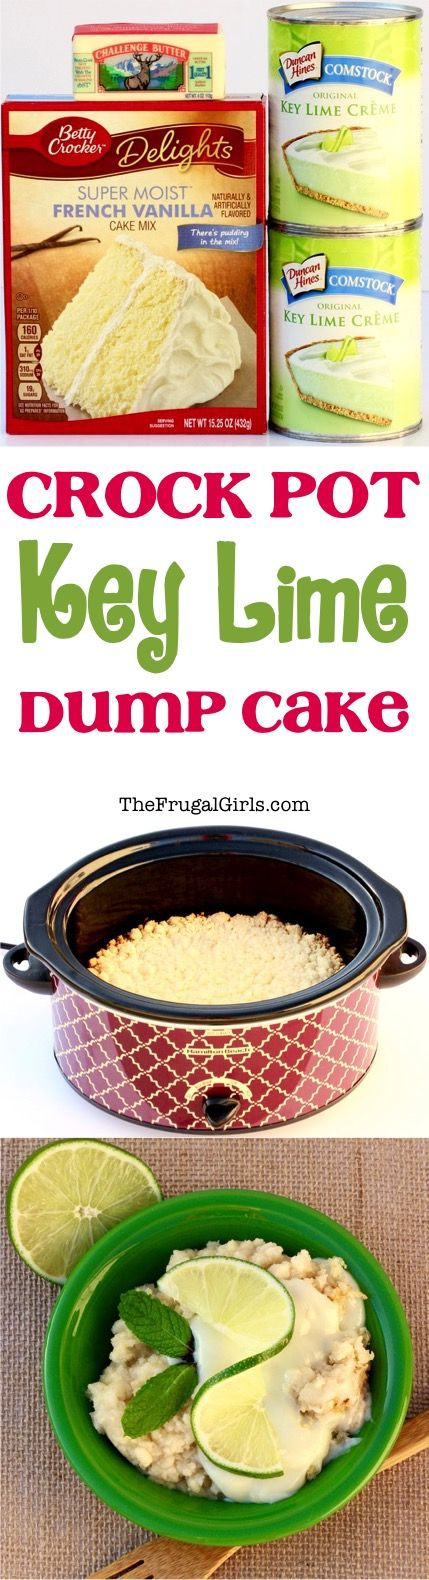 Crock Pot Key Lime Dump Cake Recipe! ~ from TheFrugalGirls.com ~ just a few easy ingredients and you've got Key Lime Heaven in your Slow Cooker... the perfect dessert for your next party or cookout! 4h